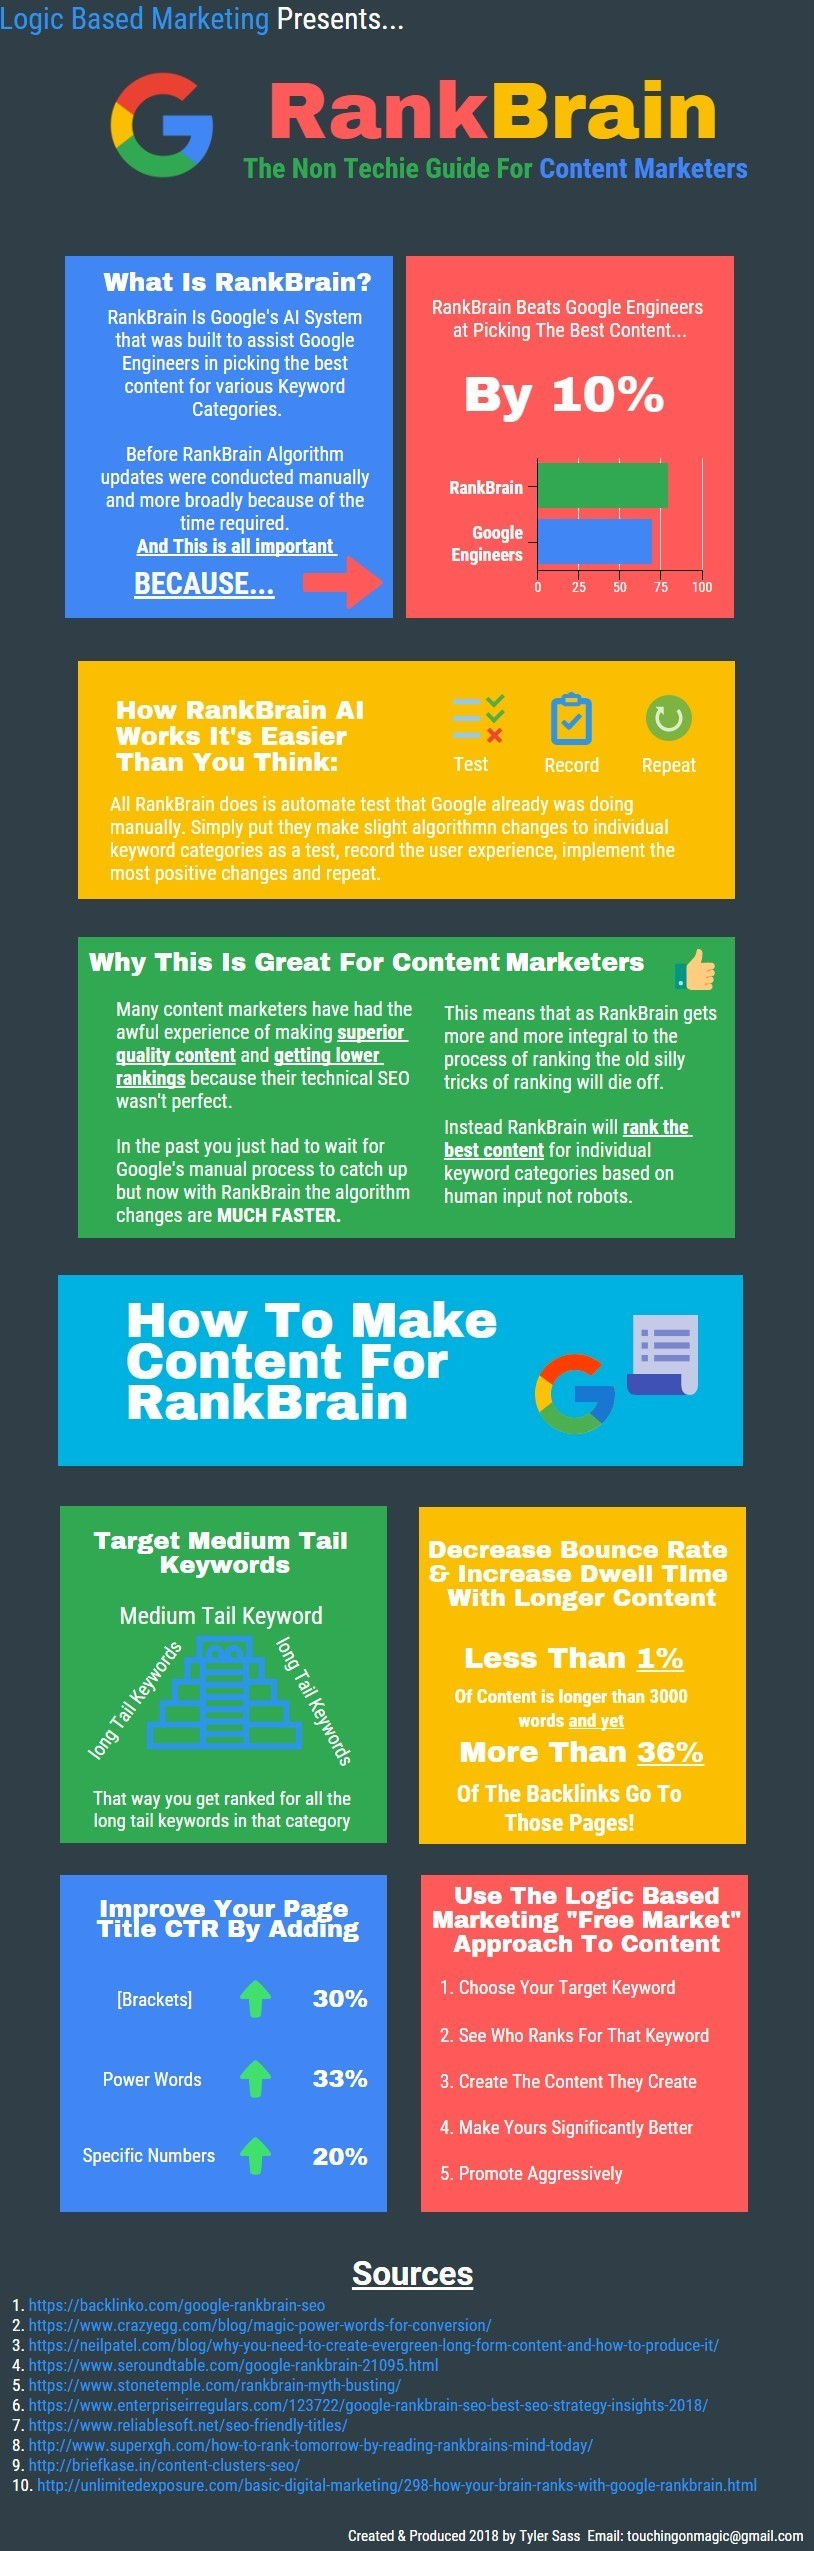 RankBrain The Non Techie Guide For Content Marketers Infographic